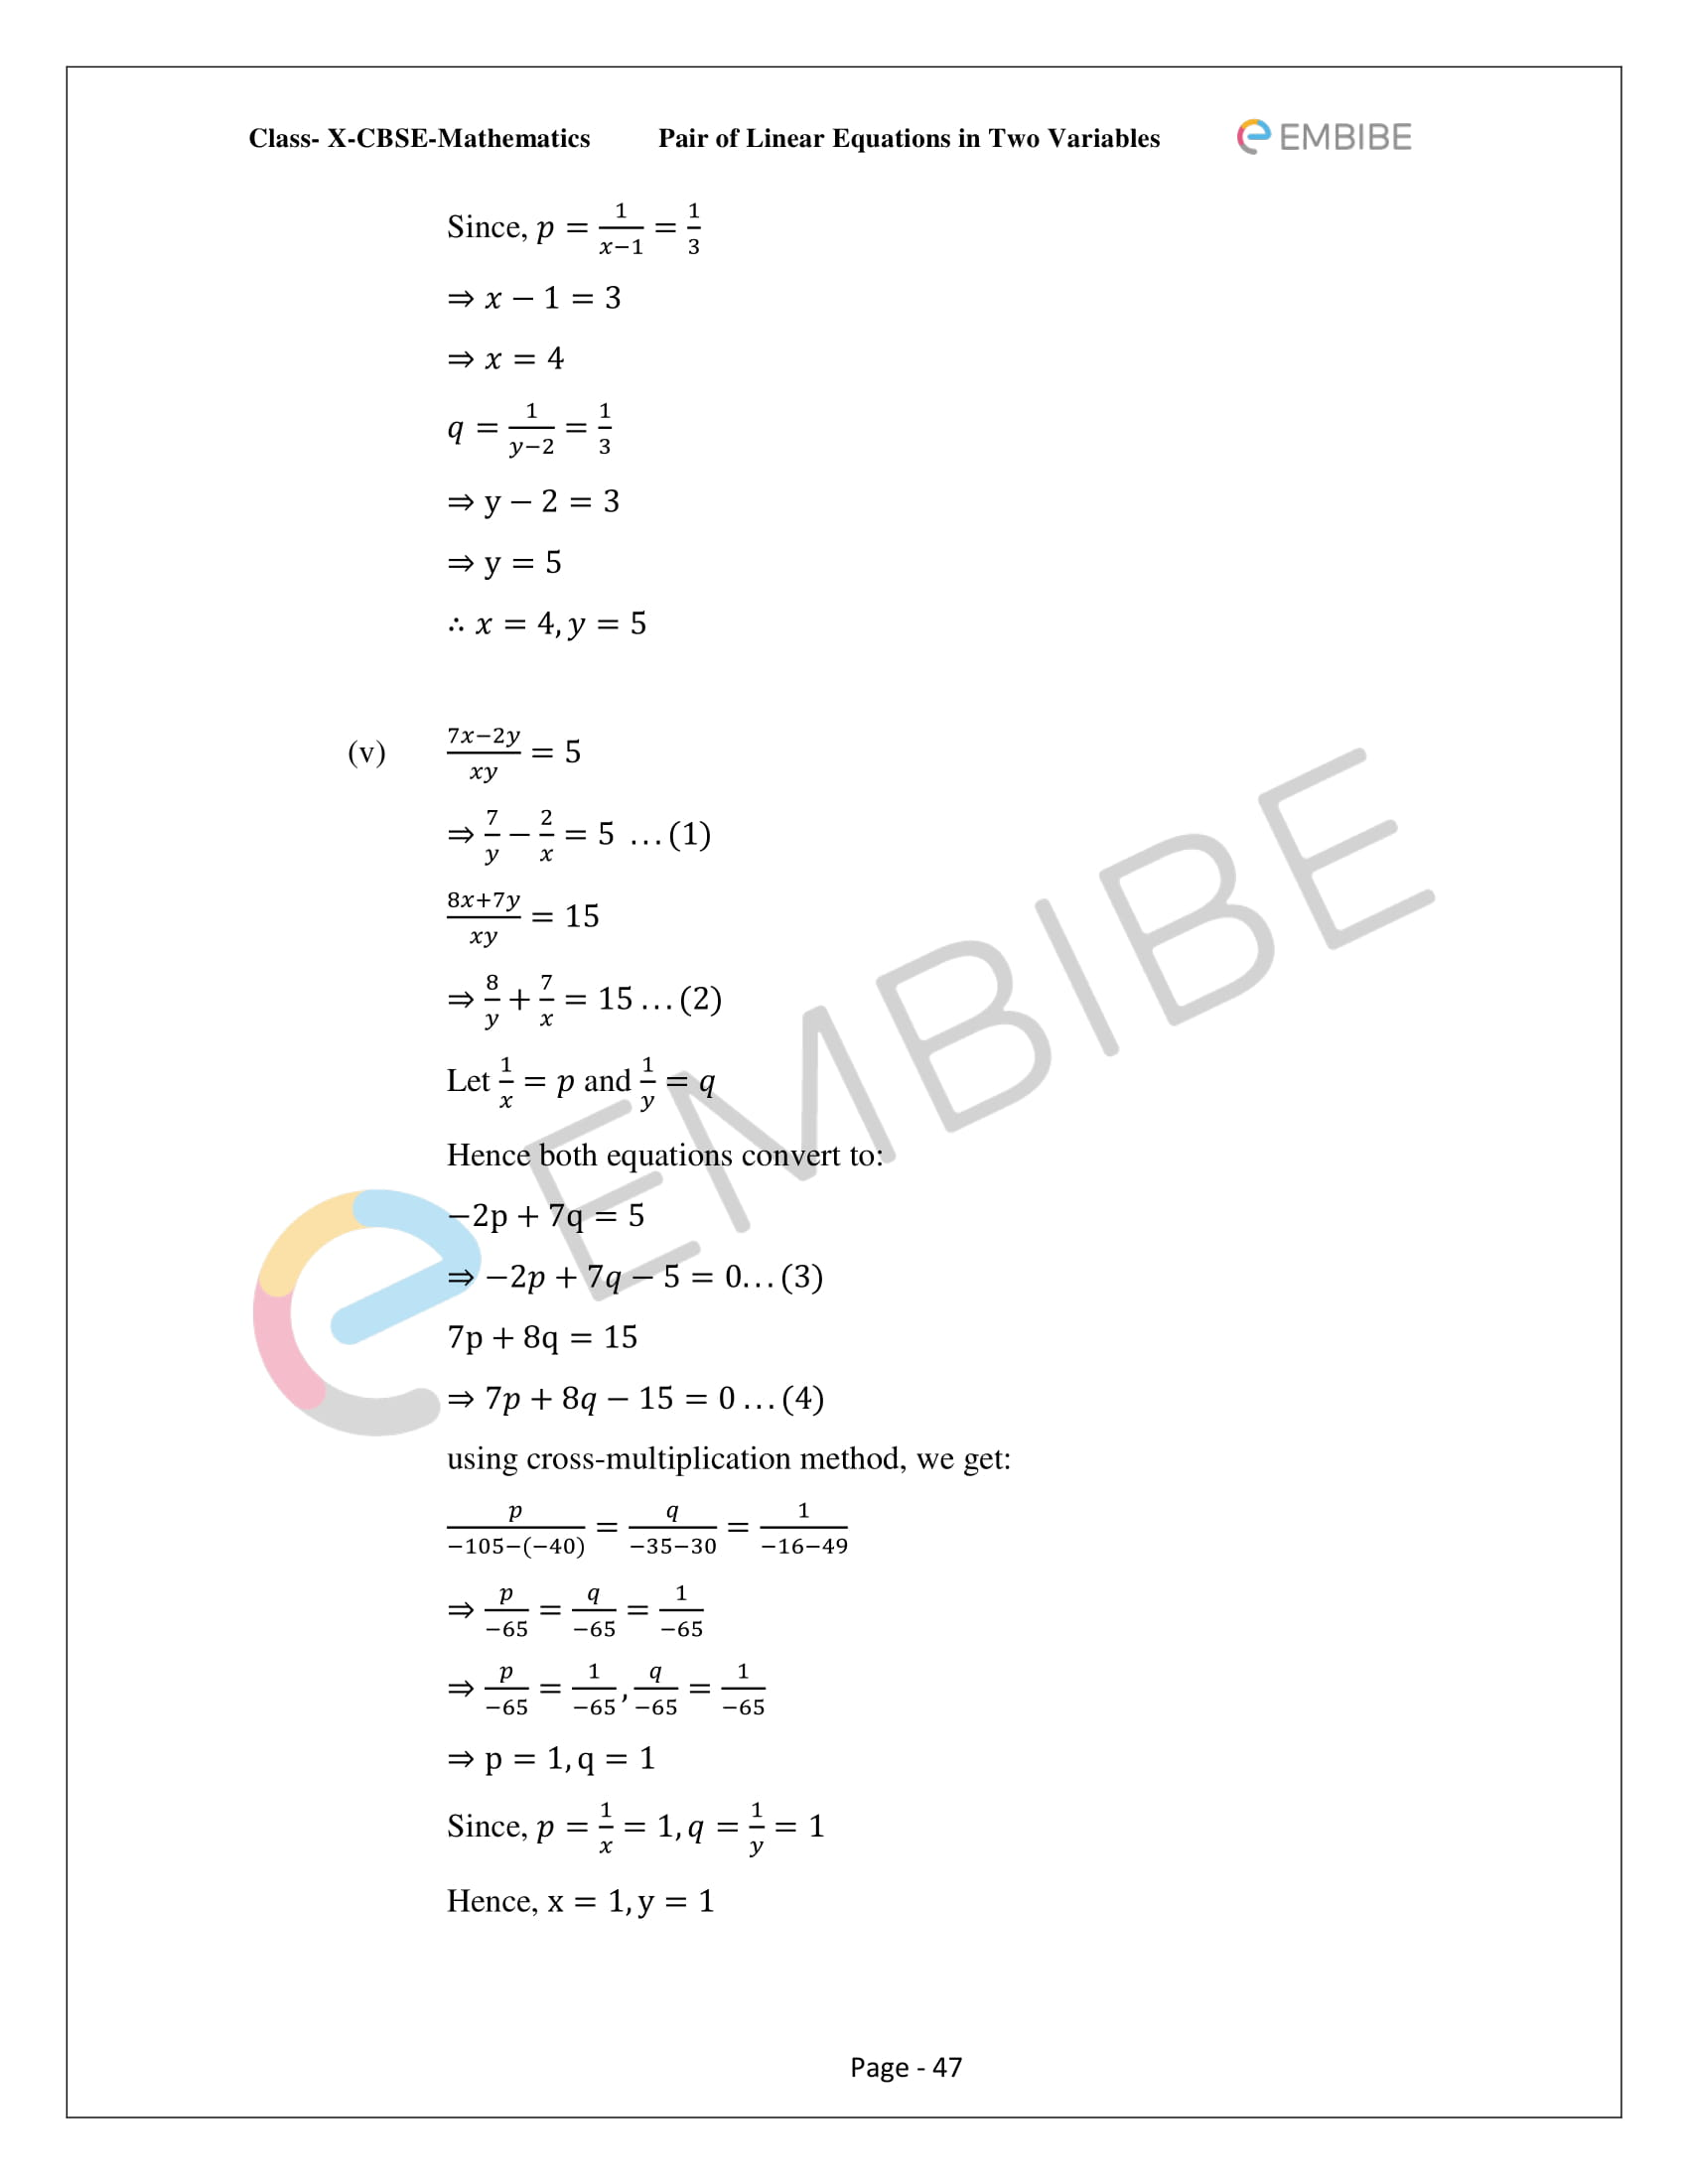 CBSE NCERT Solutions For Class 10 Maths Chapter 3 - Pair of Linear Equations In Two Variables - 47